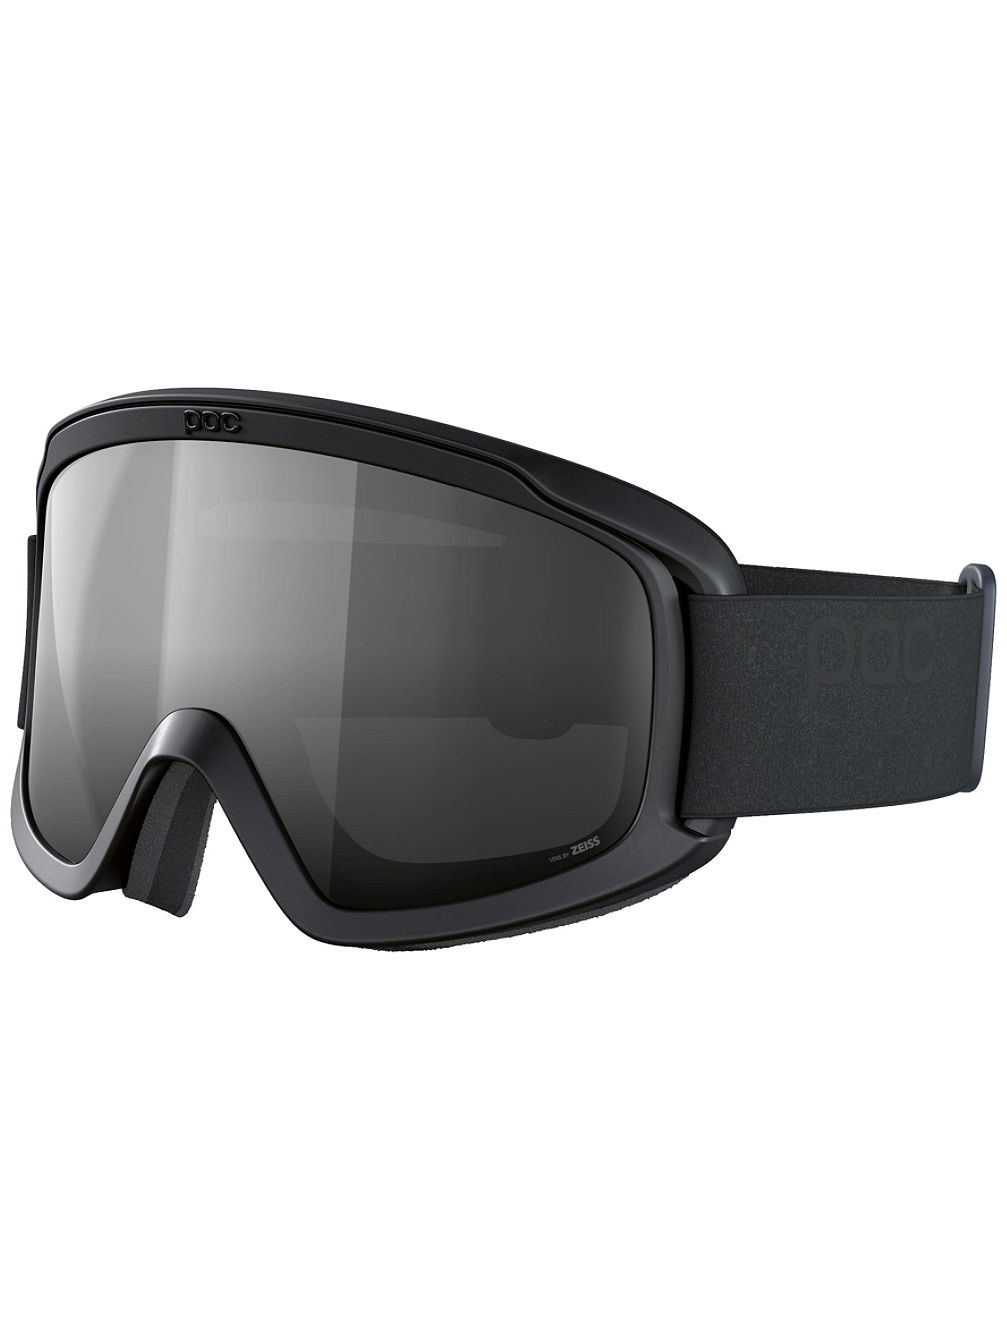 Opsin All Black Goggle